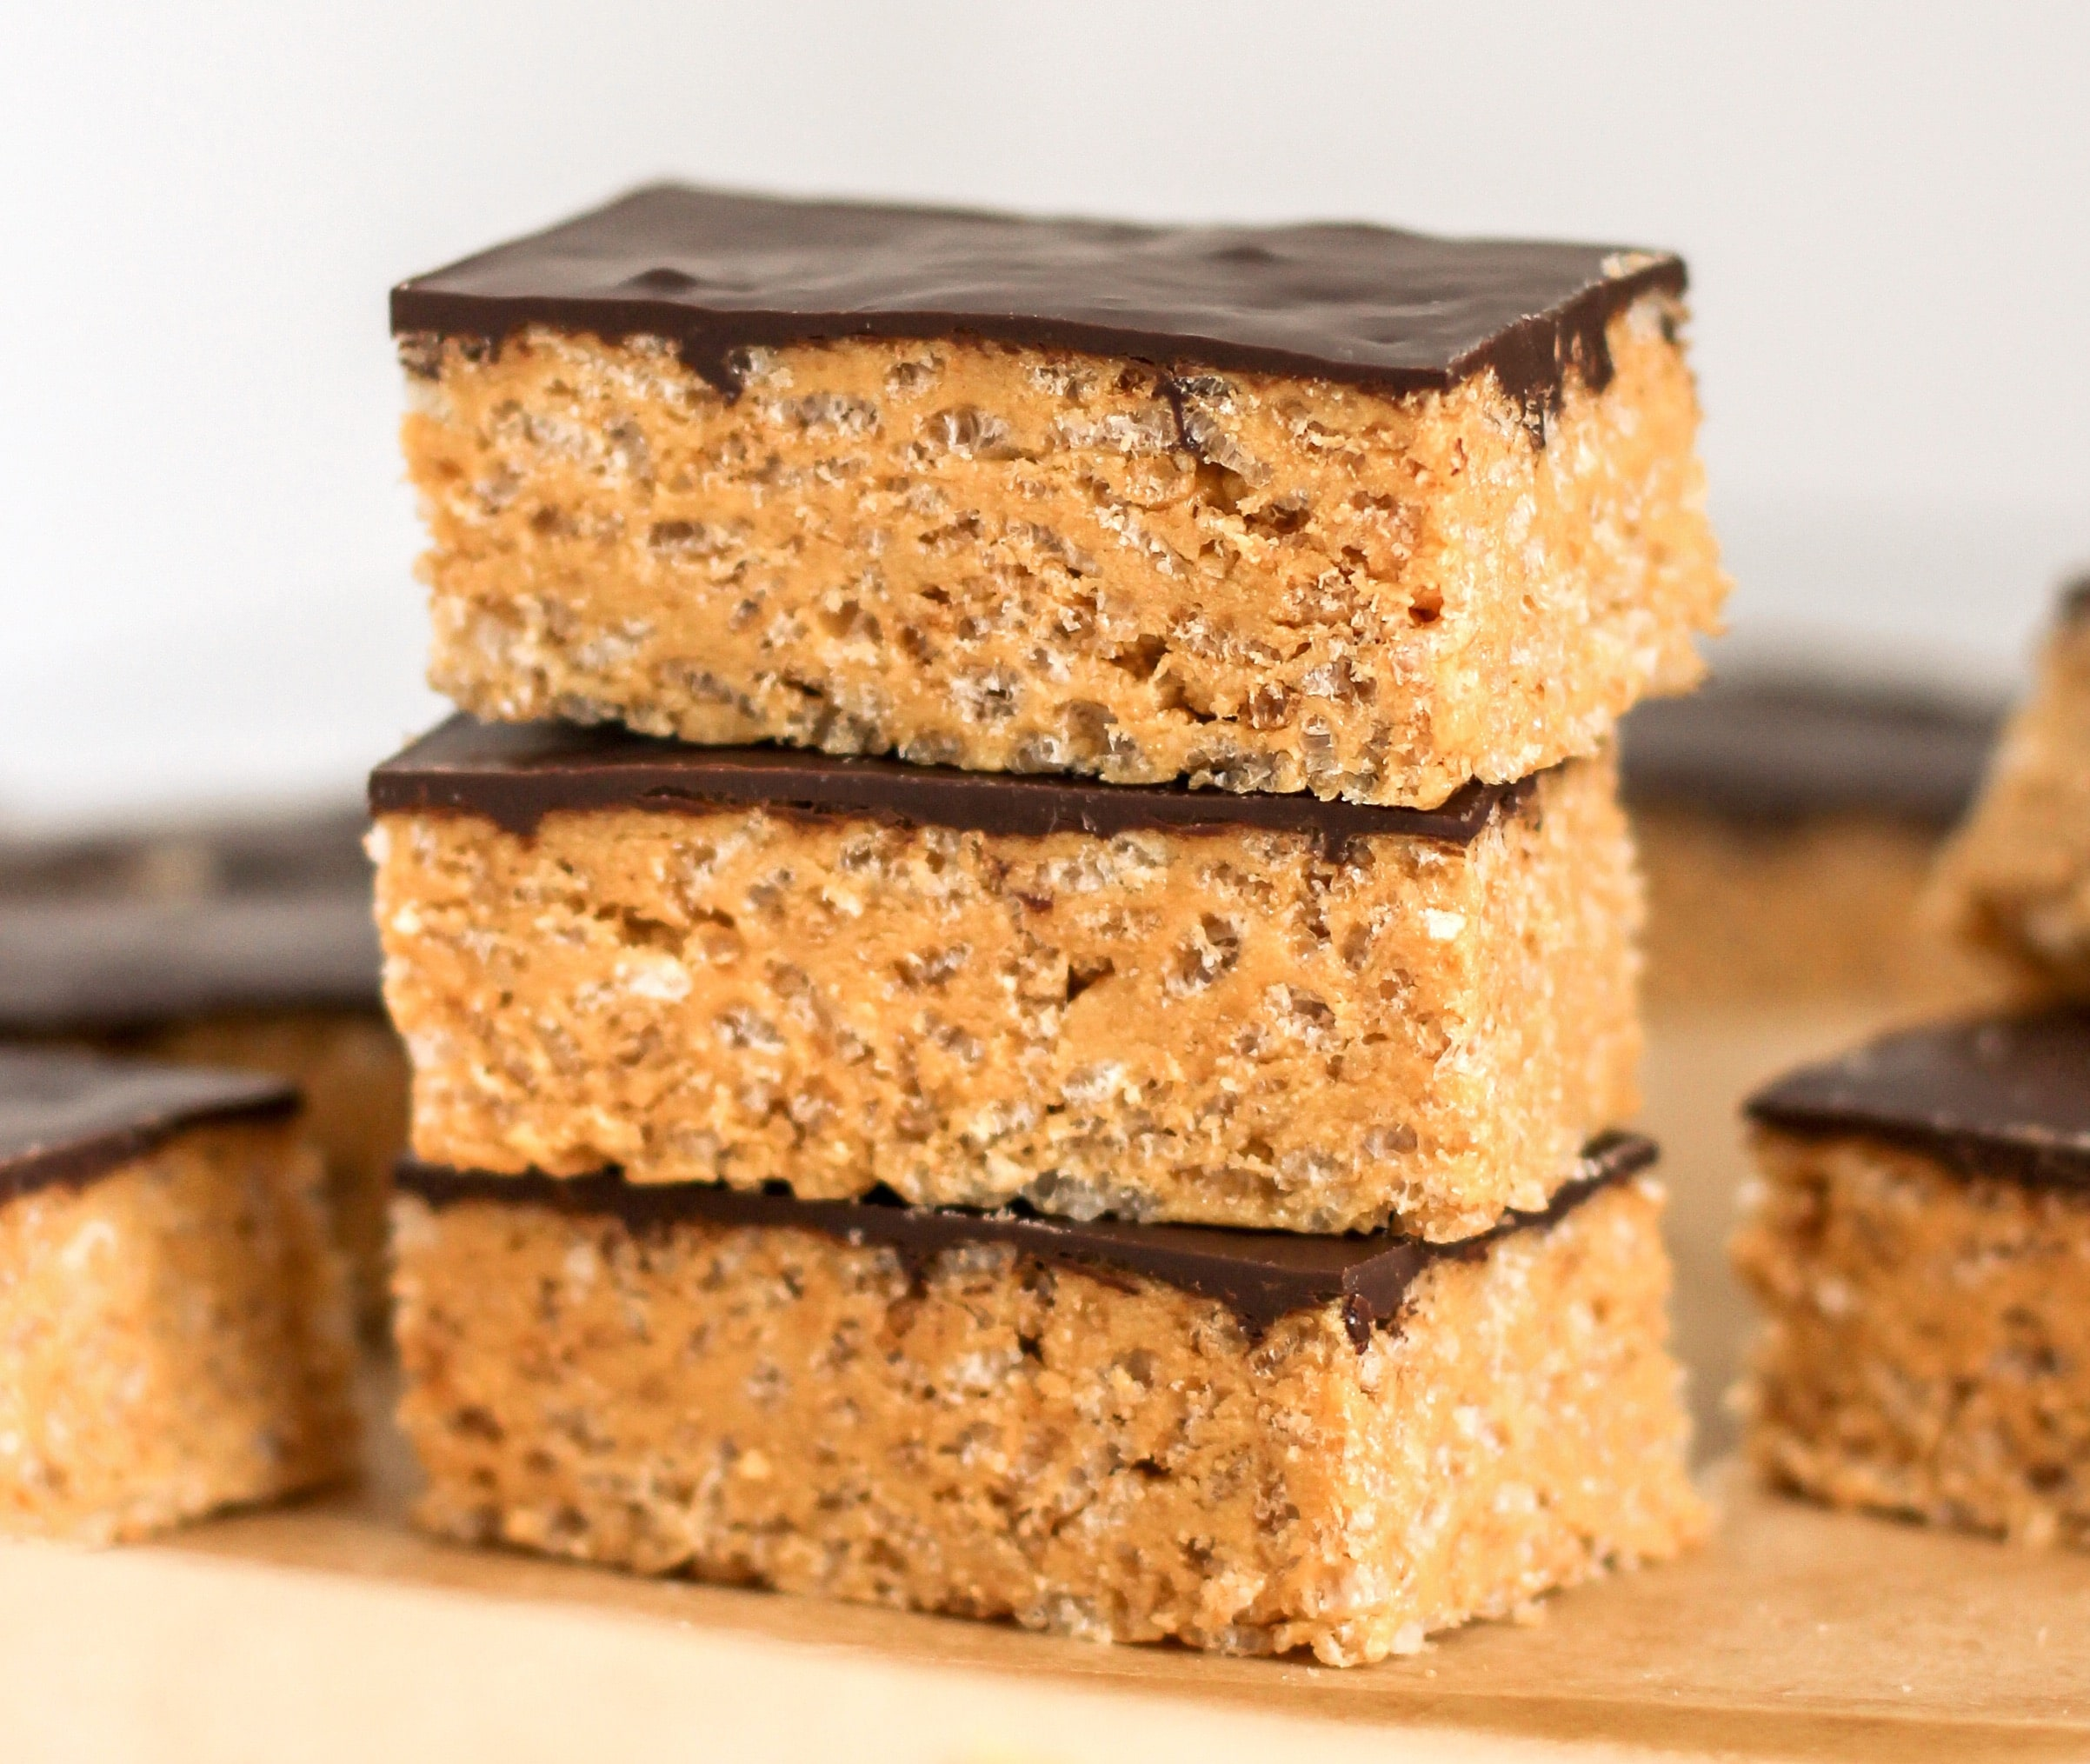 Healthy Scotcheroos DIY Protein Bars (Peanut Butter Butterscotch Krispy Treats with Dark Chocolate) from the DIY Protein Bars Cookbook – authored by Jessica Stier of the Desserts with Benefits Blog